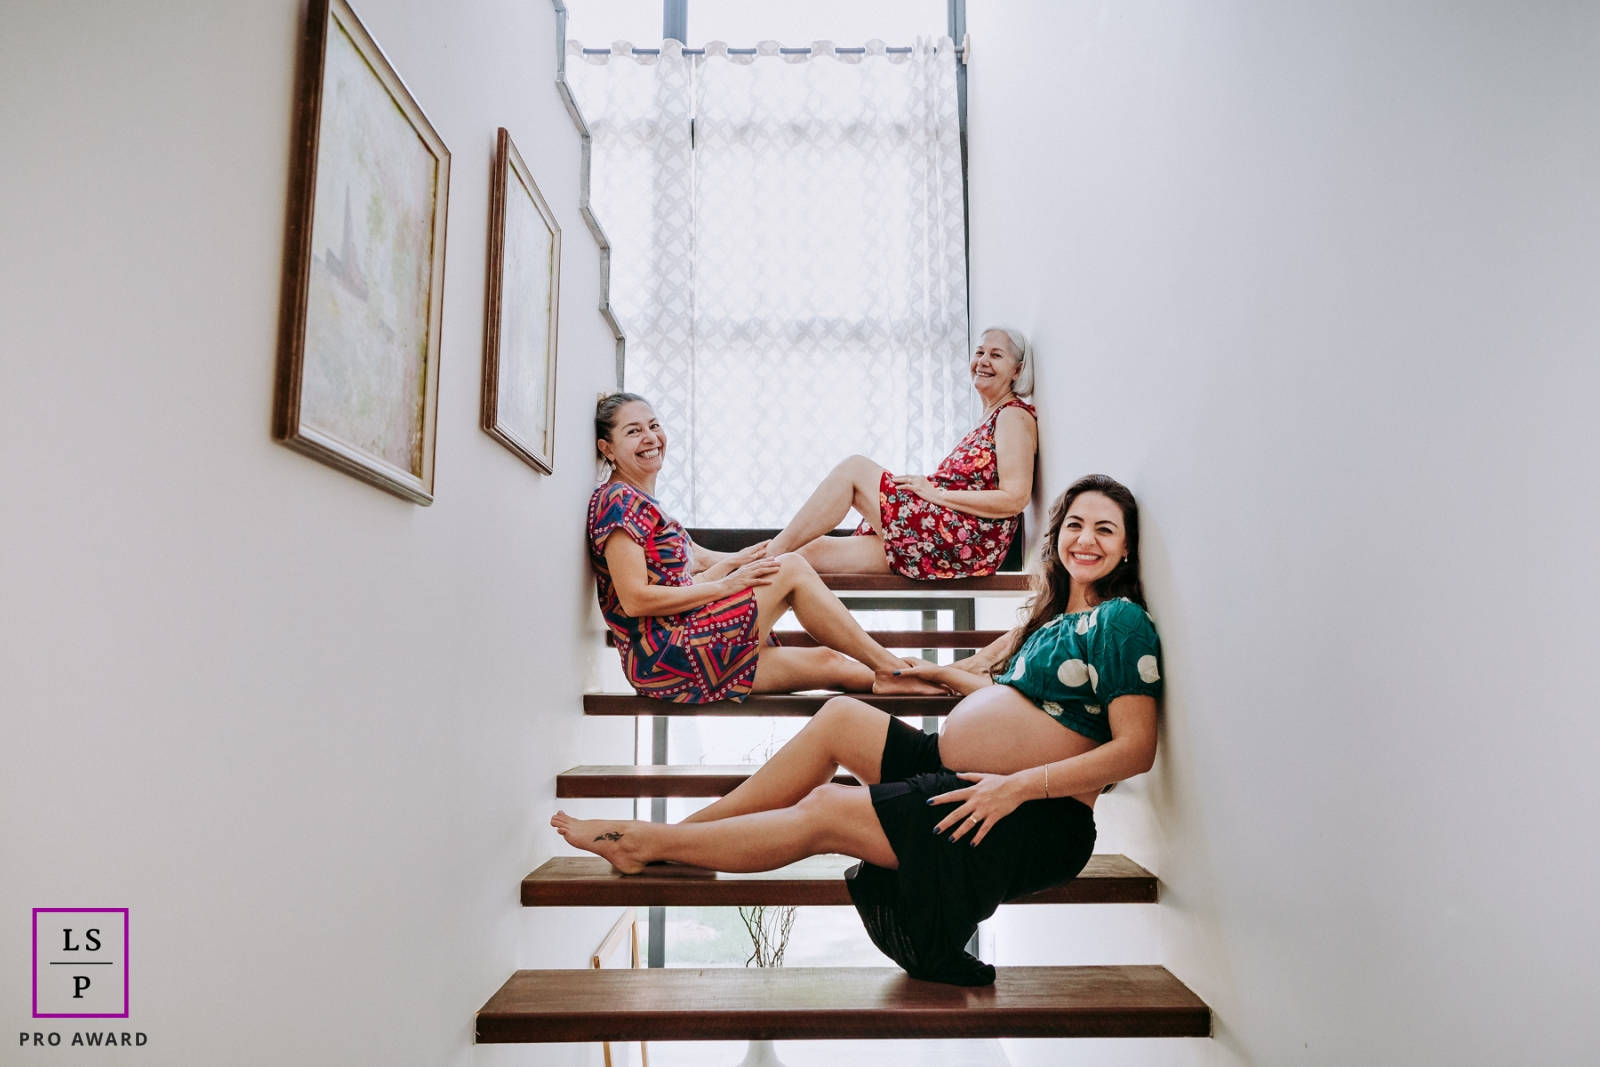 Rio de Janeiro Creative Lifestyle Portrait image of grandmother, mother, daughter and granddaughter (still in the belly) posing for family photo on the stairs of the house